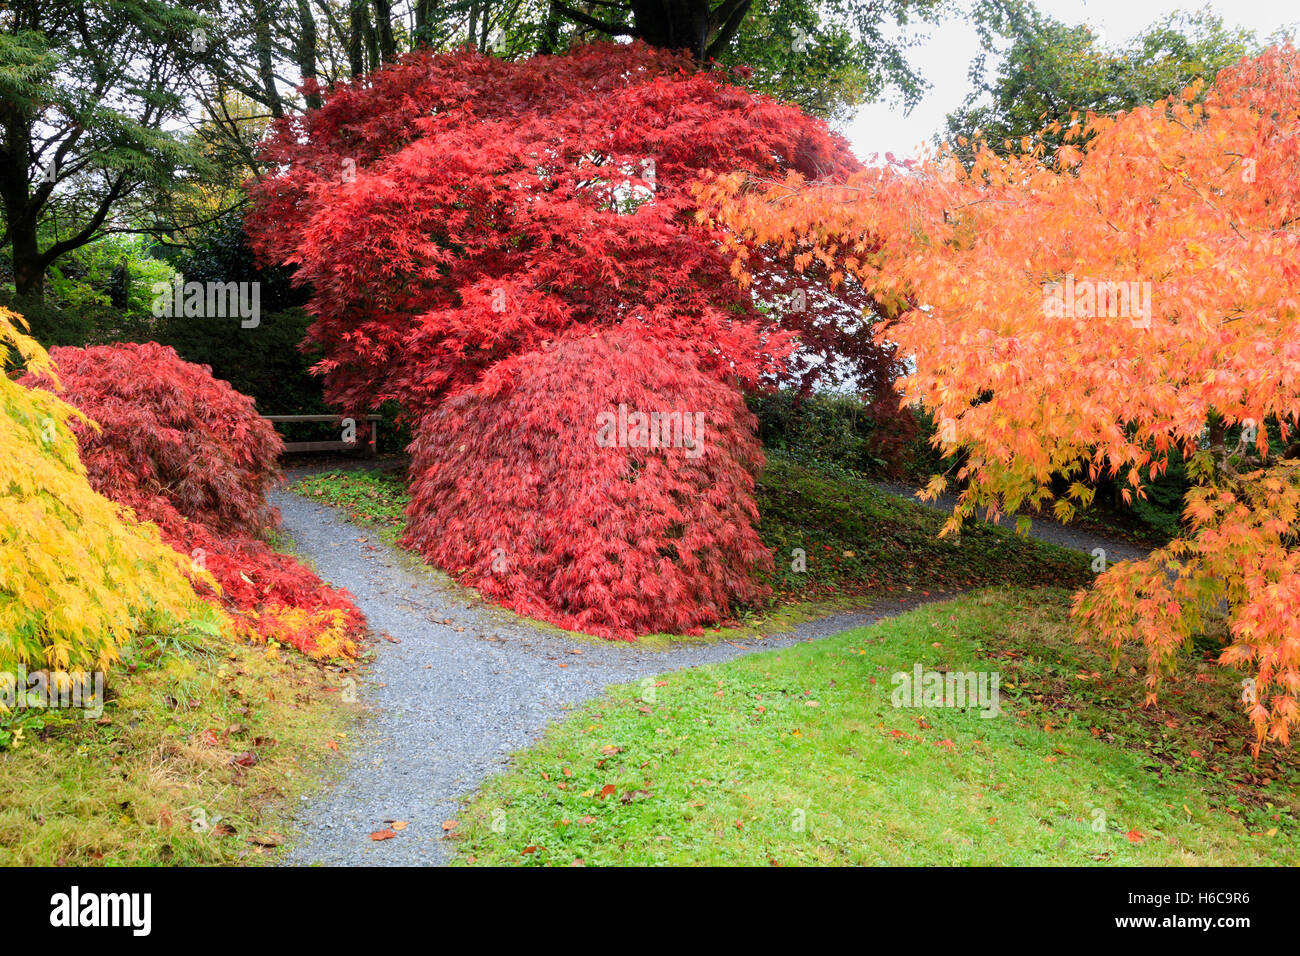 reds-yellow-and-orange-autumn-leaf-colour-from-acer-palmatum-varietes-H6C9R6.jpg